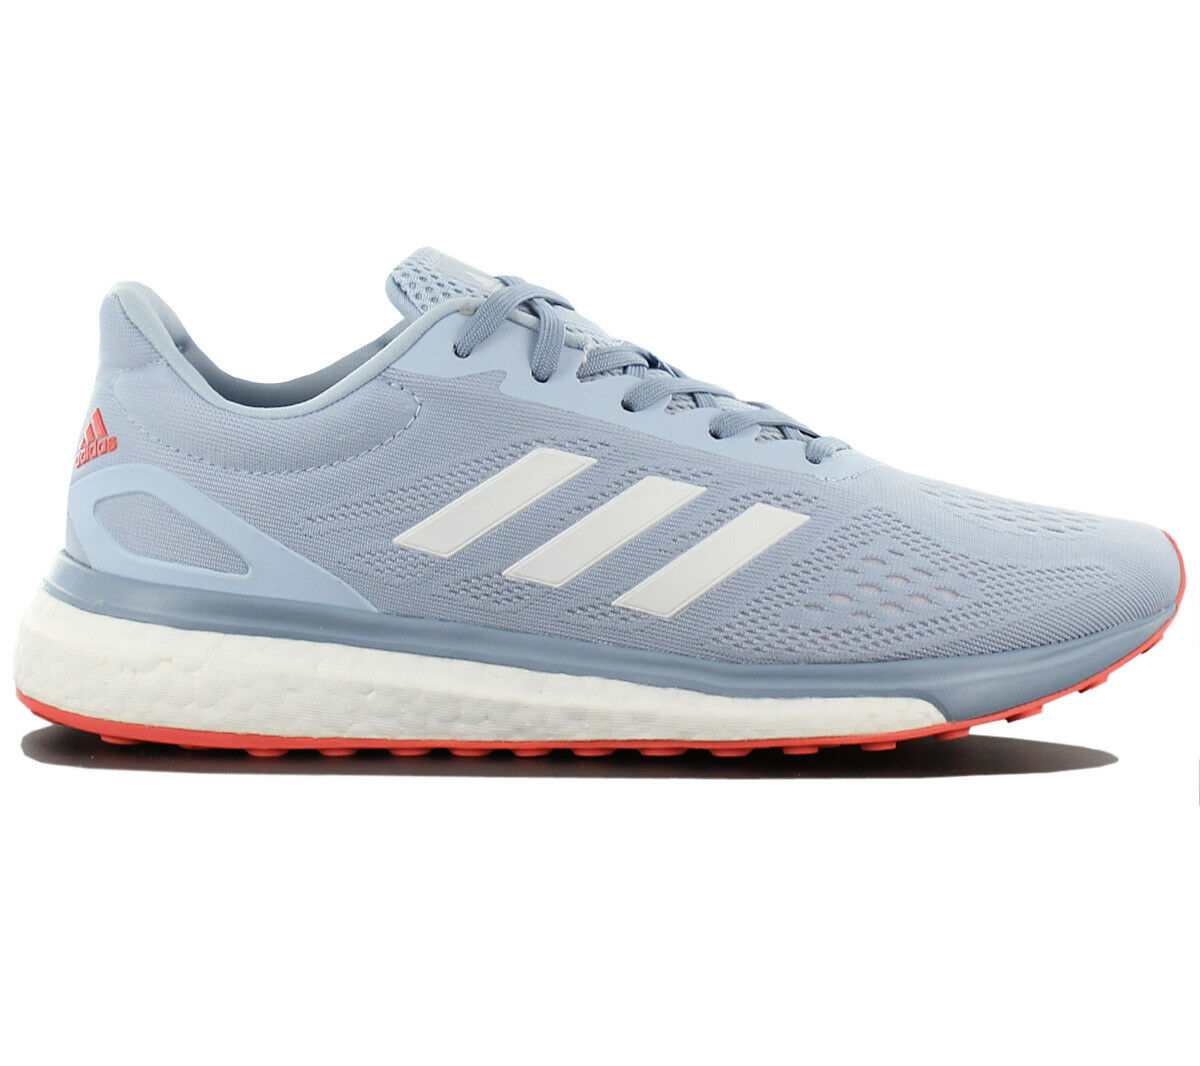 Adidas Response Lt W Boost Ladies Running shoes Fitness Sport shoes Bb3425